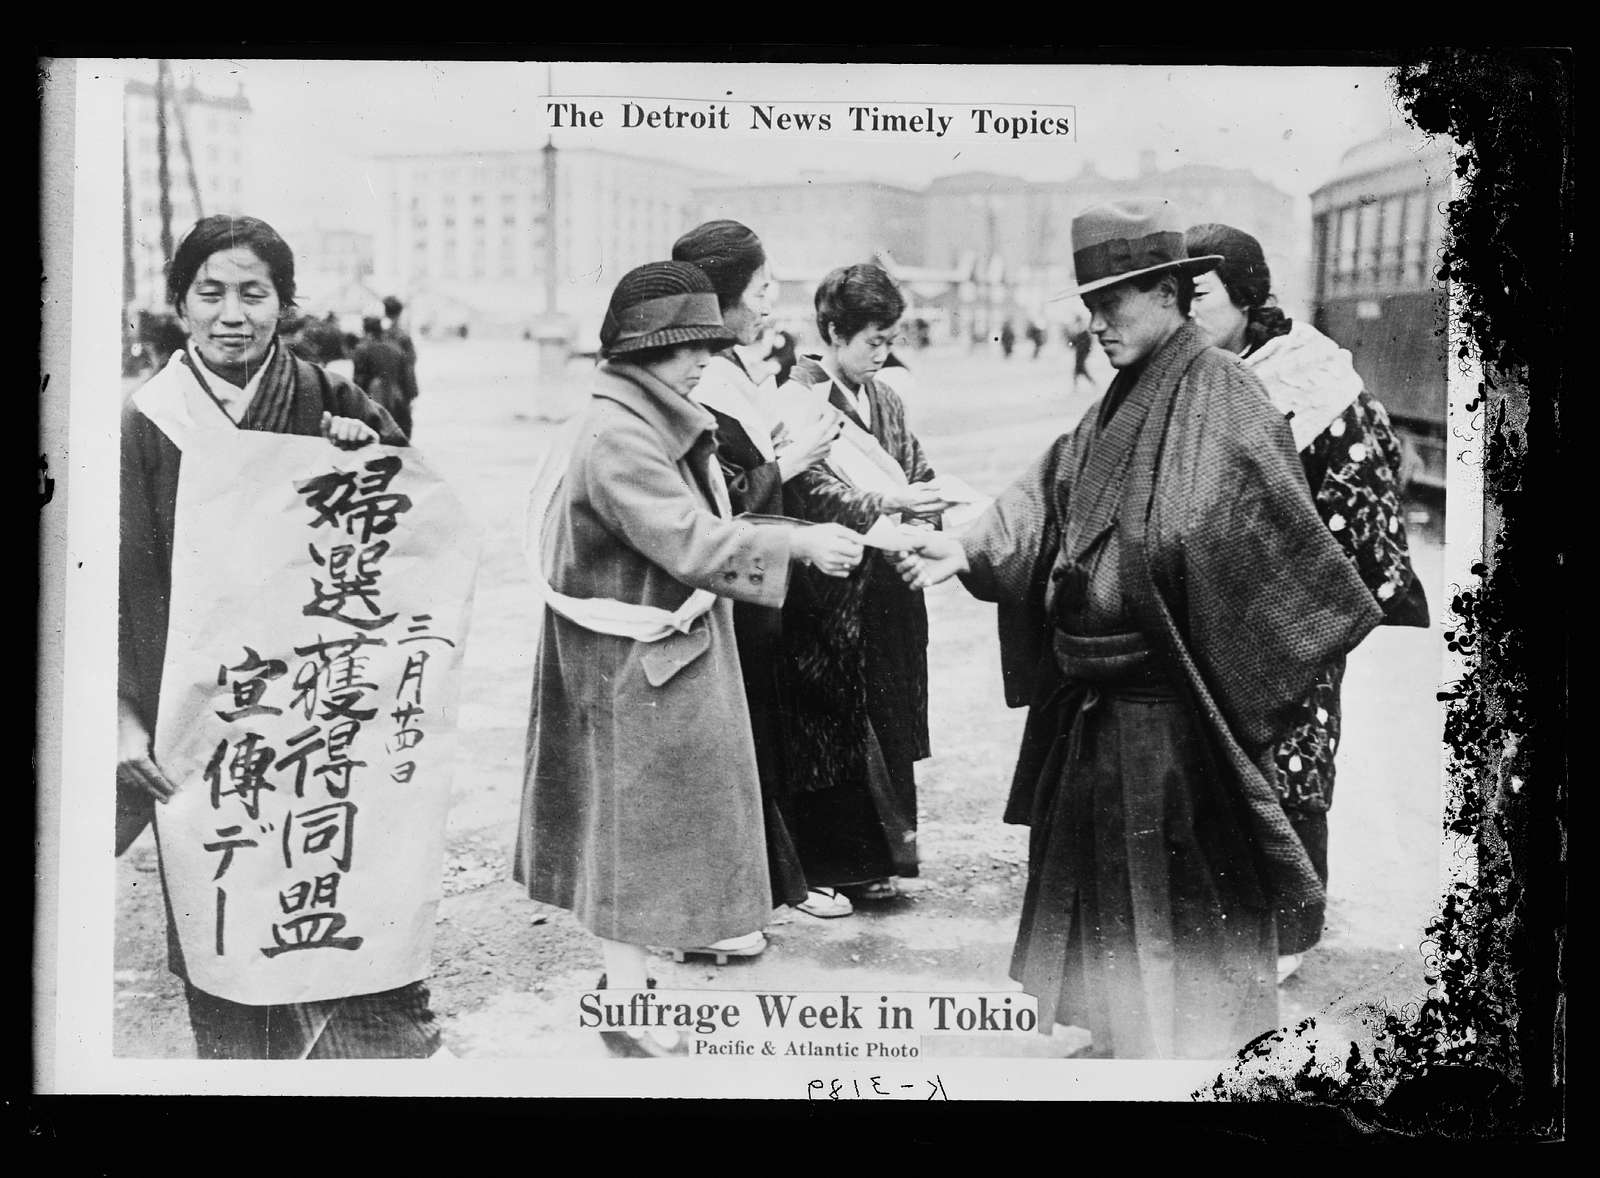 The Detroit news timely topics. Suffrage week in Tokio sic